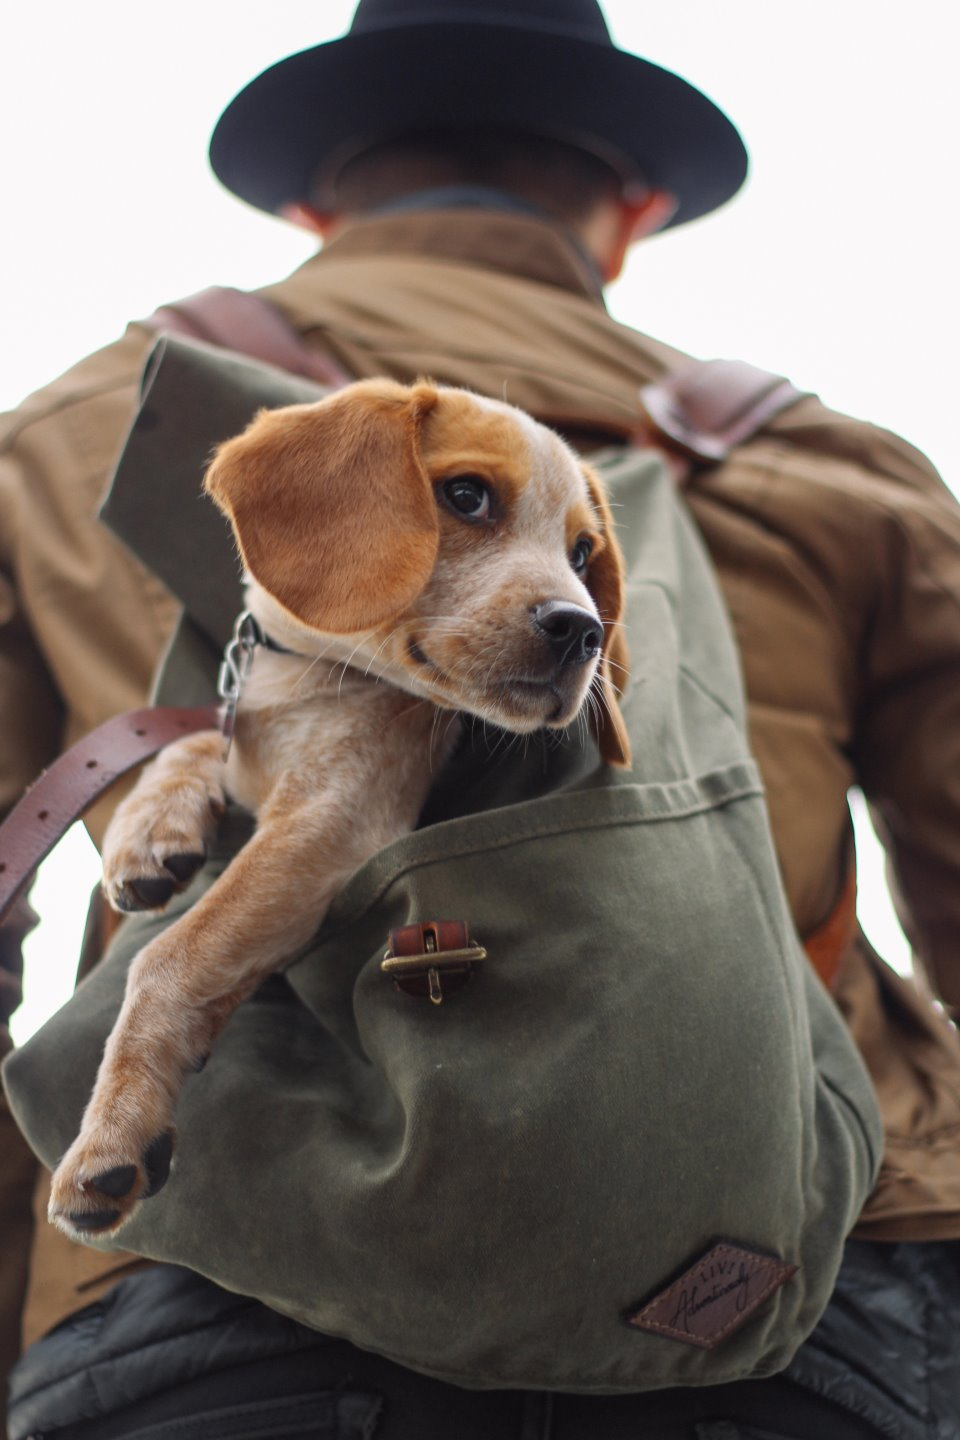 A man carrying a dog in his back pack